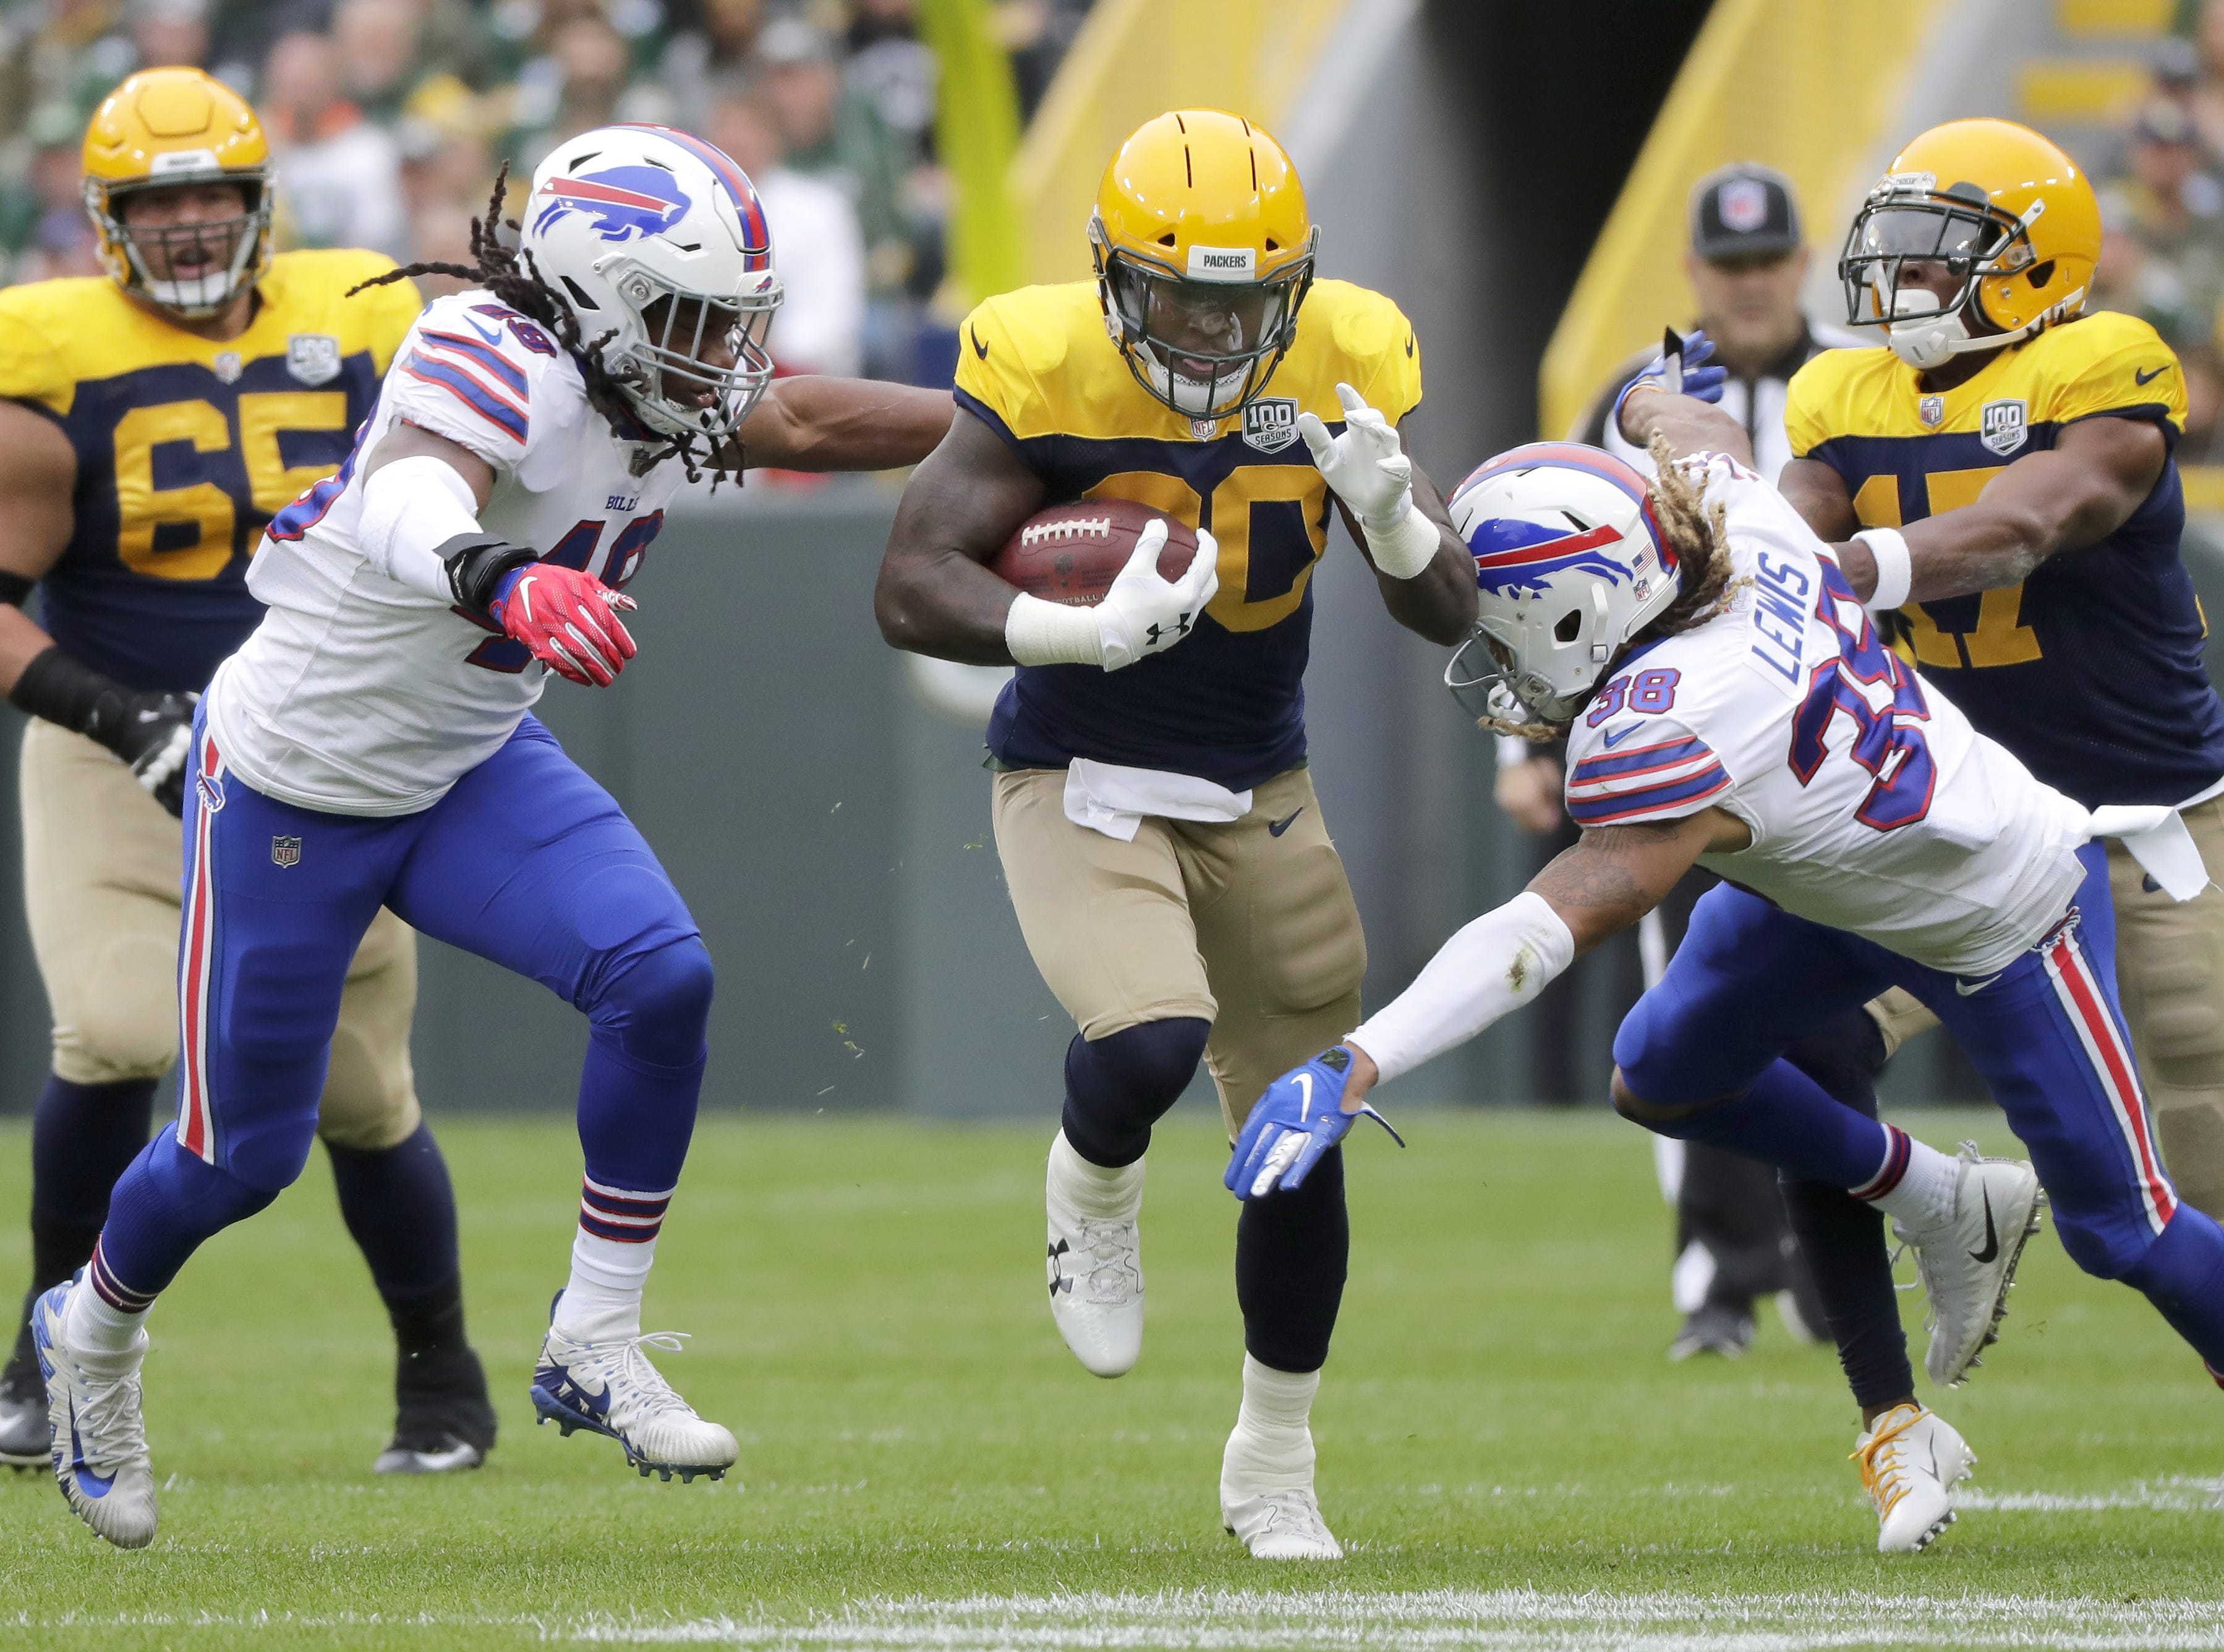 Green Bay Packers running back Jamaal Williams against the Buffalo Bills on Sunday, September 30, 2018, at Lambeau Field in Green Bay, Wis.  Wm. Glasheen/USA TODAY NETWORK-Wisconsin.